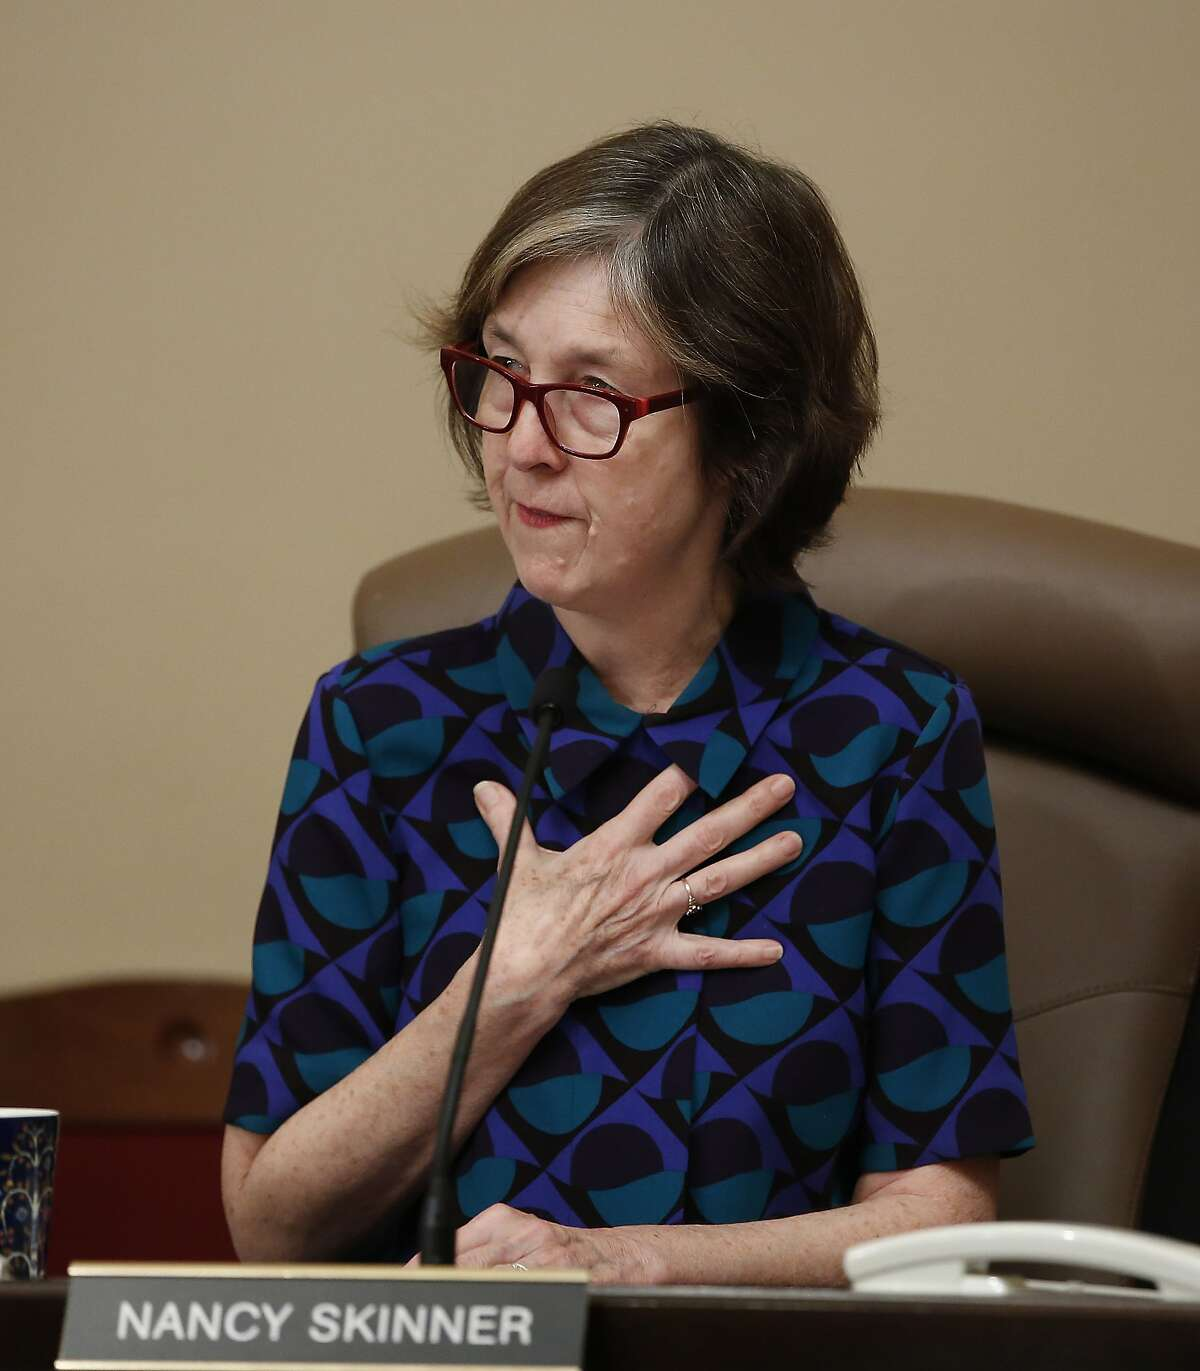 State Sen. Nancy Skinner, D-Berkeley, is the author of SB1421, a landmark police transparency bill. Six months after the law began, many police departments have not complied with its terms.